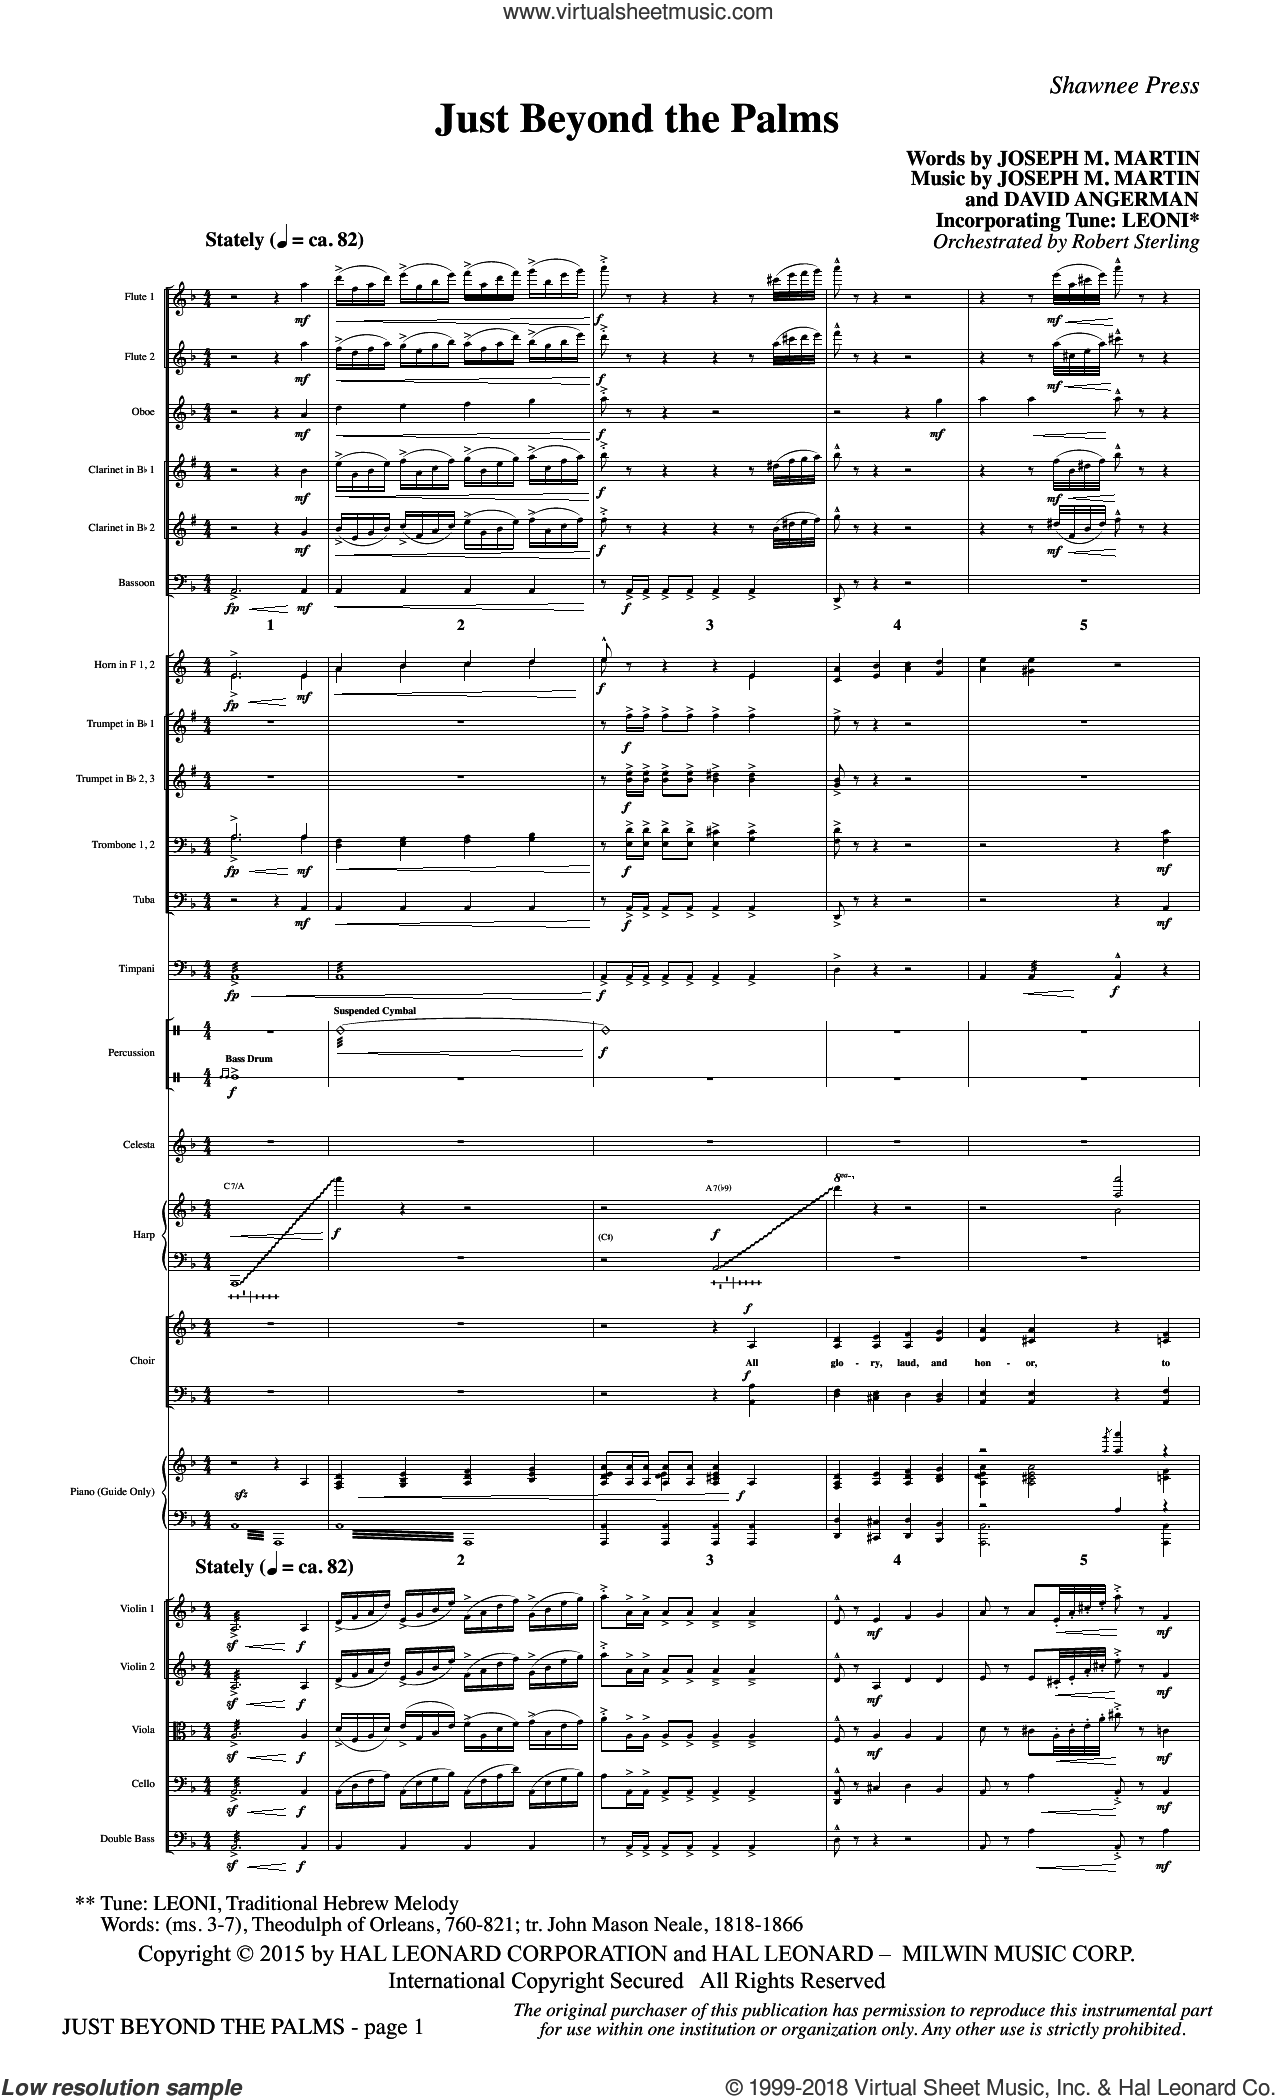 Just Beyond the Palms (COMPLETE) sheet music for orchestra/band by Joseph M. Martin and David Angerman, intermediate skill level